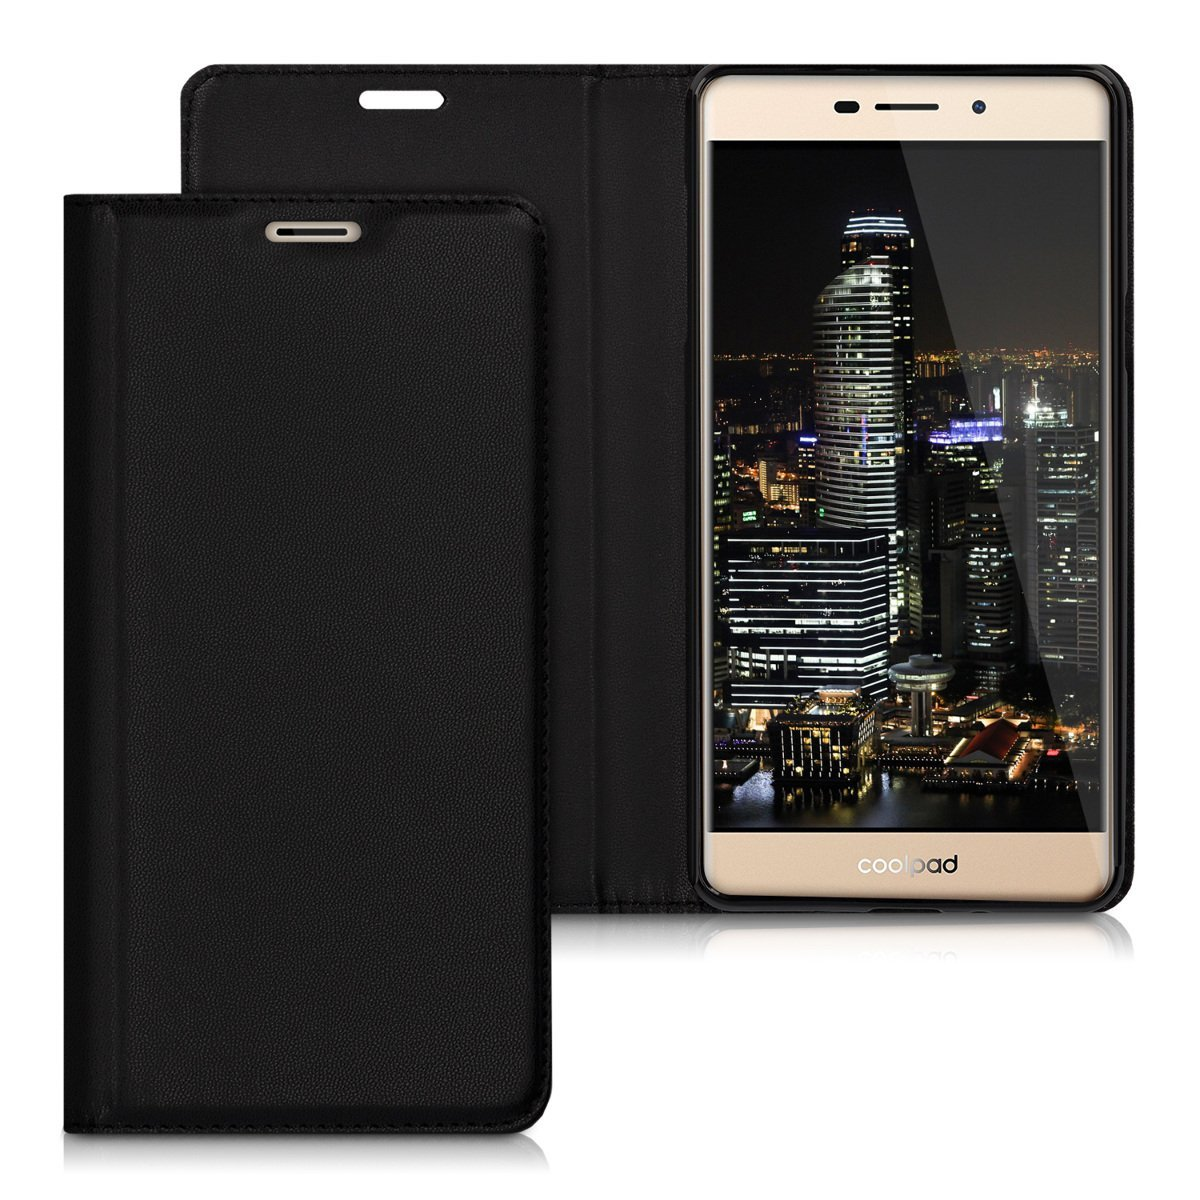 KW Flip Θήκη Coolpad Modena 2 - Black (40293.01)